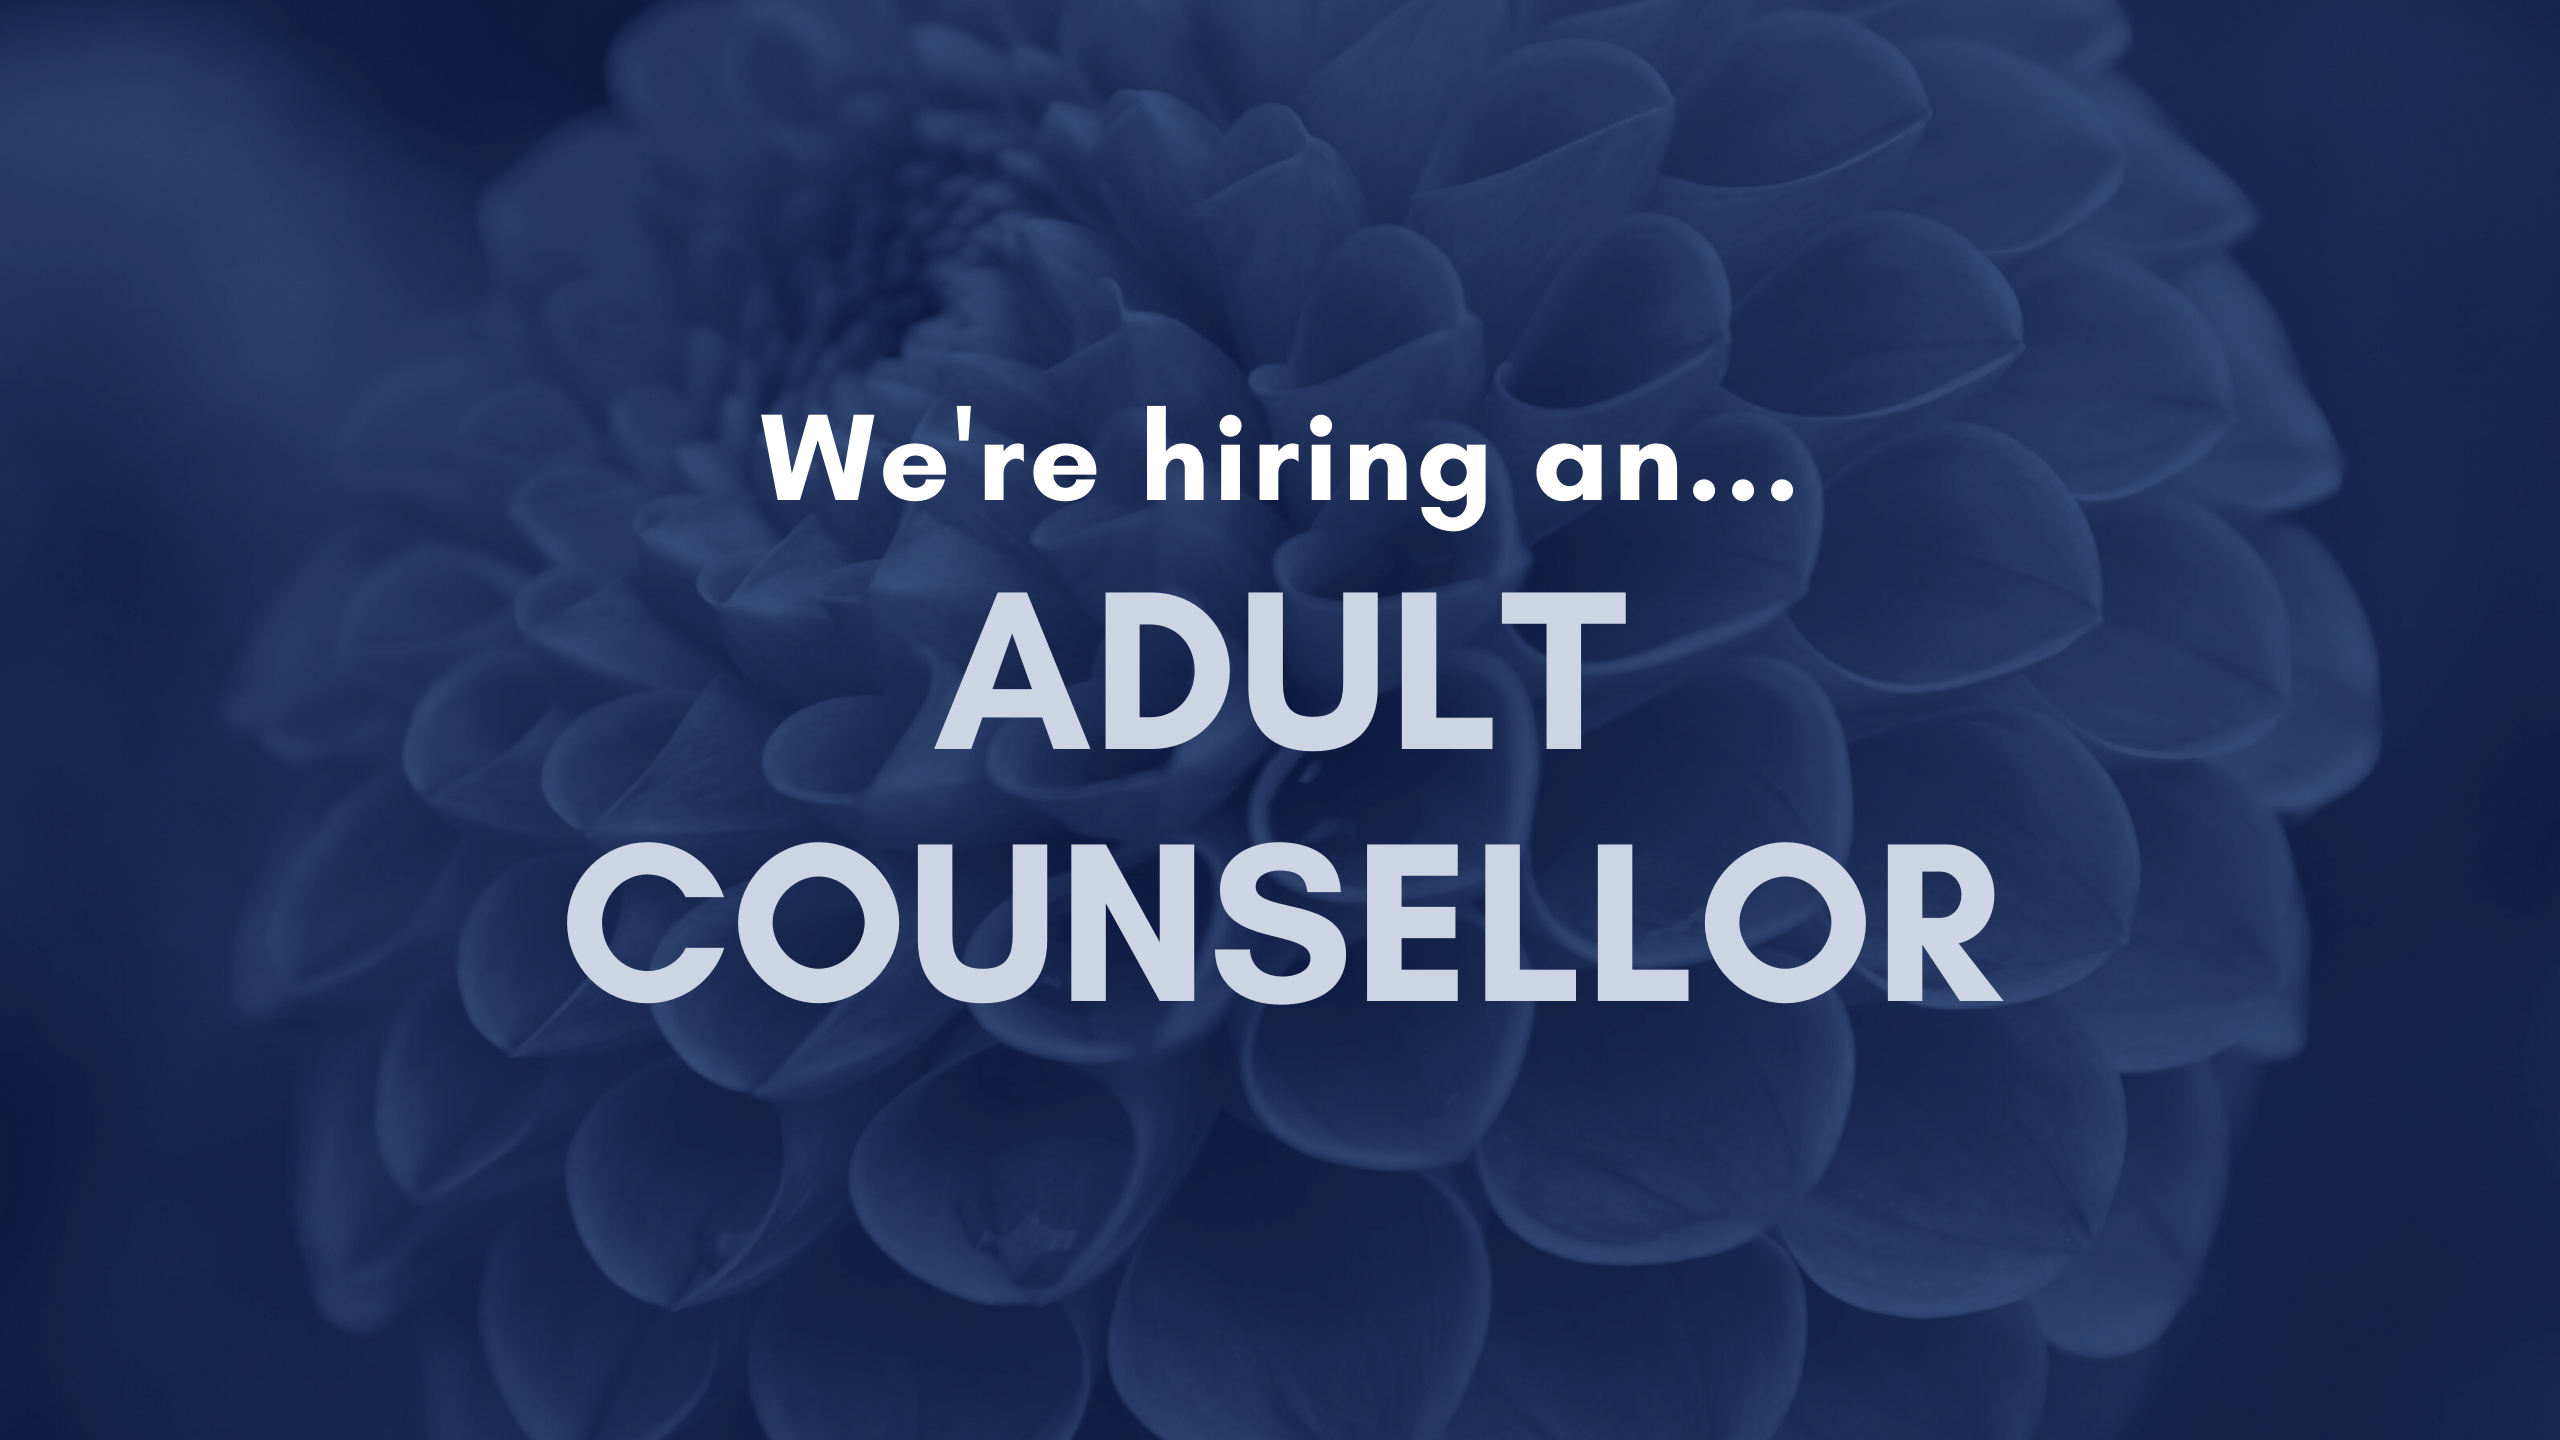 We're Hiring An Adult Counsellor